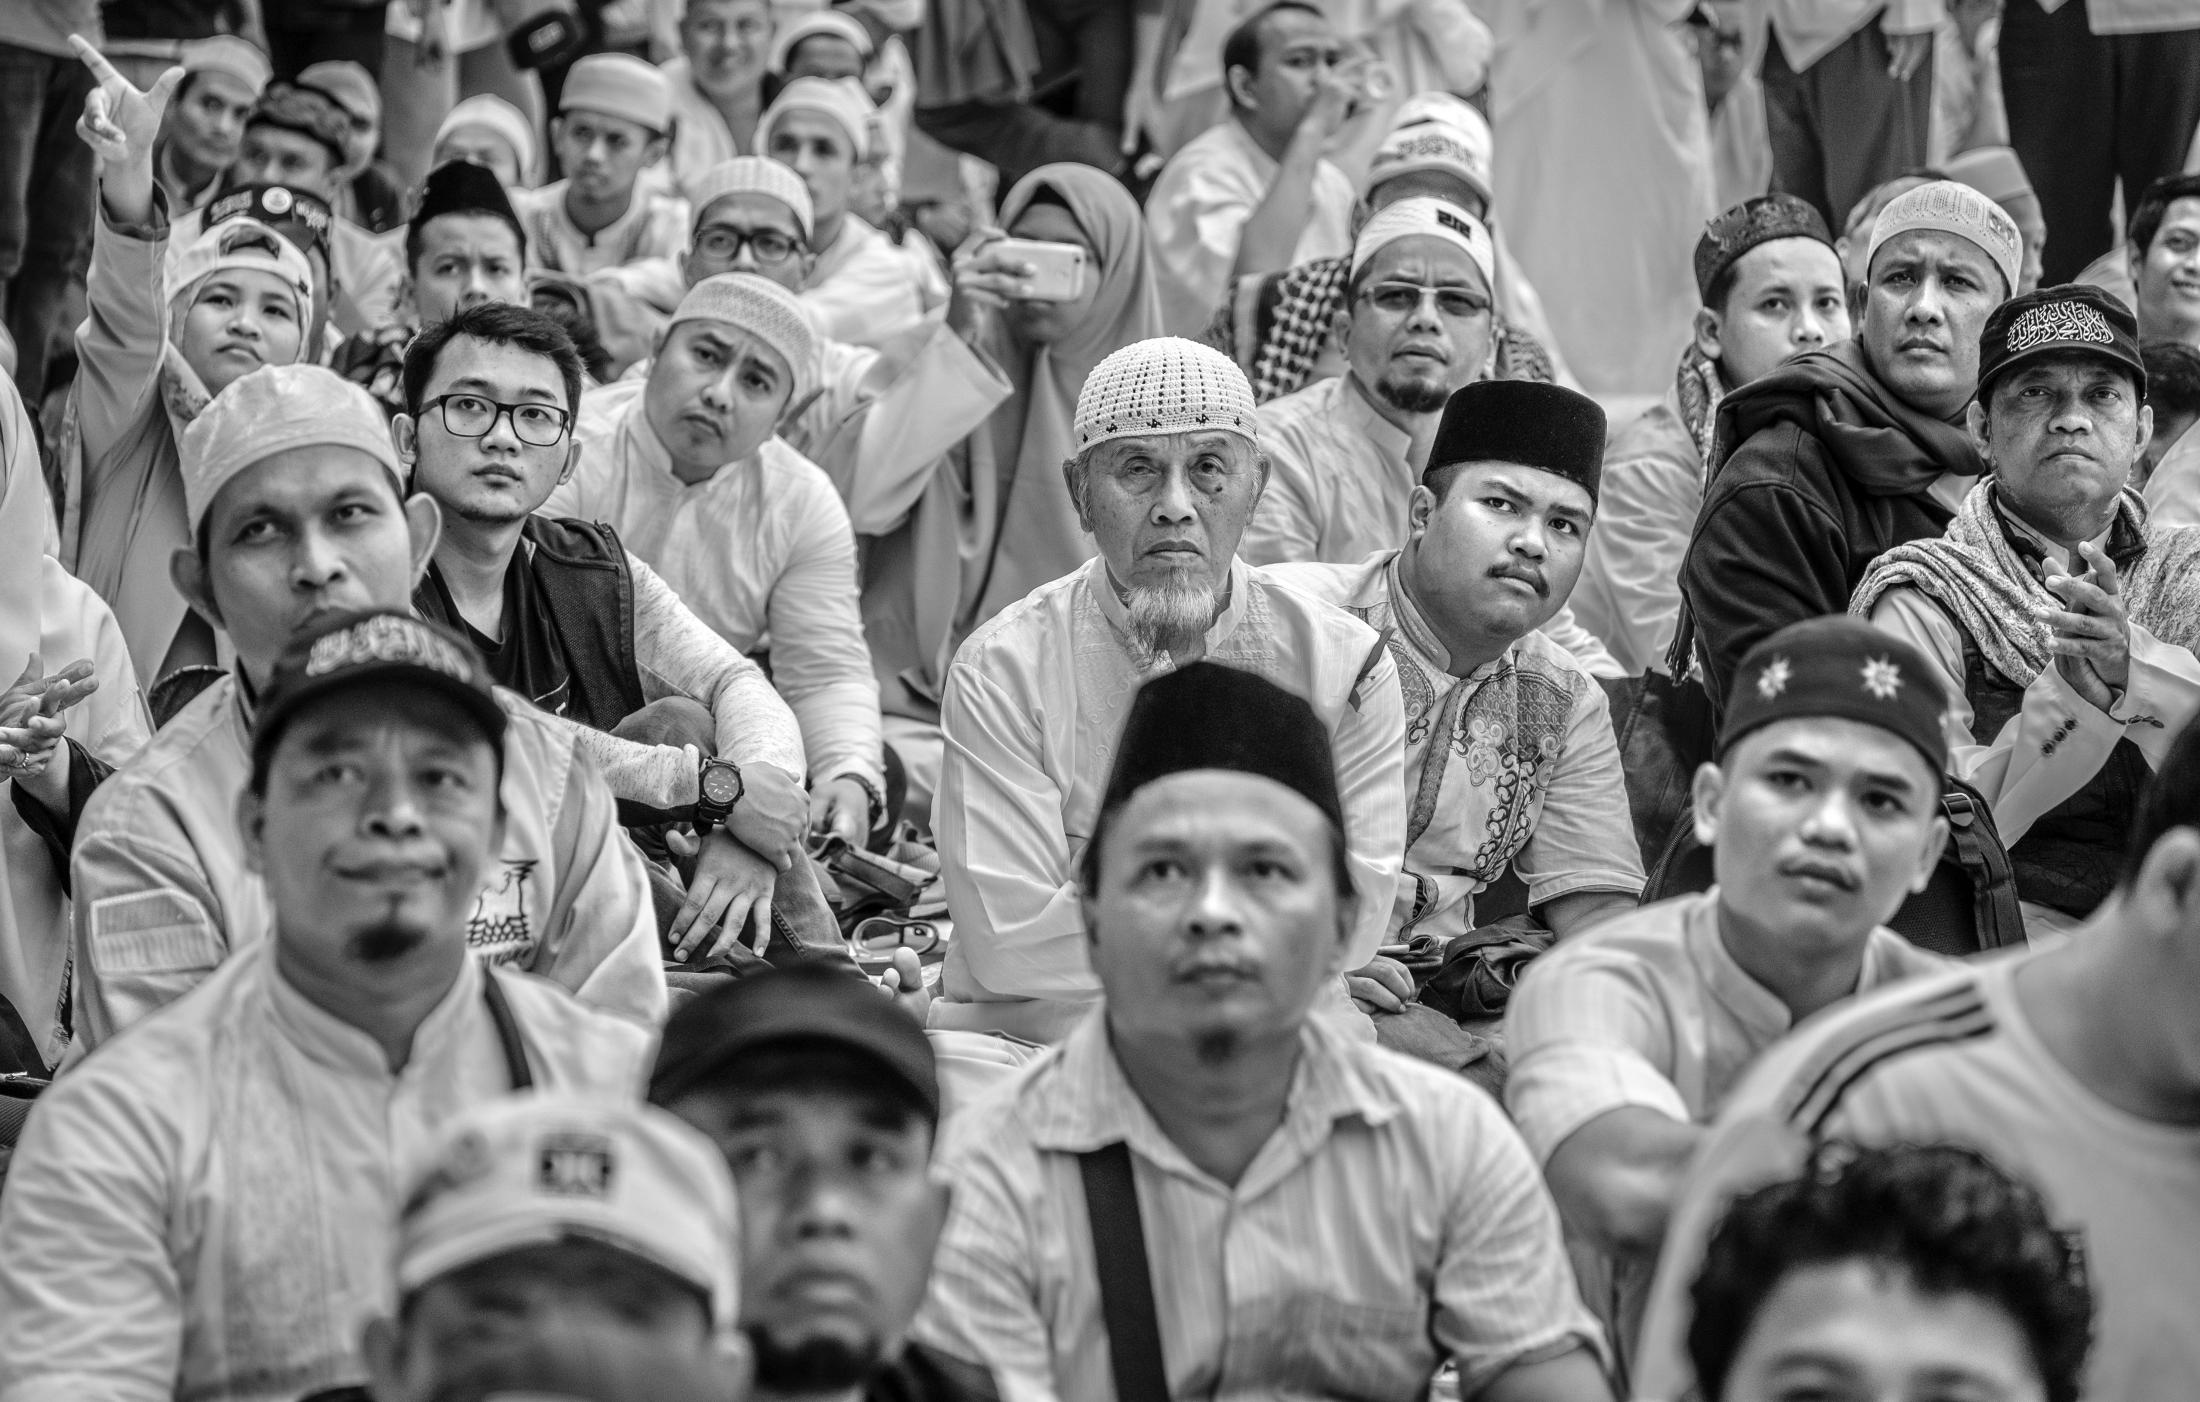 Supporters of former general and the presidential candidate Prabowo Subianto at a rally held in Jakarta, Indonesia 6 April 2019. He was beaten by Joko Widodo, know as Jokowi. Prabowo was backed by conservative and religious hardliner for his run.